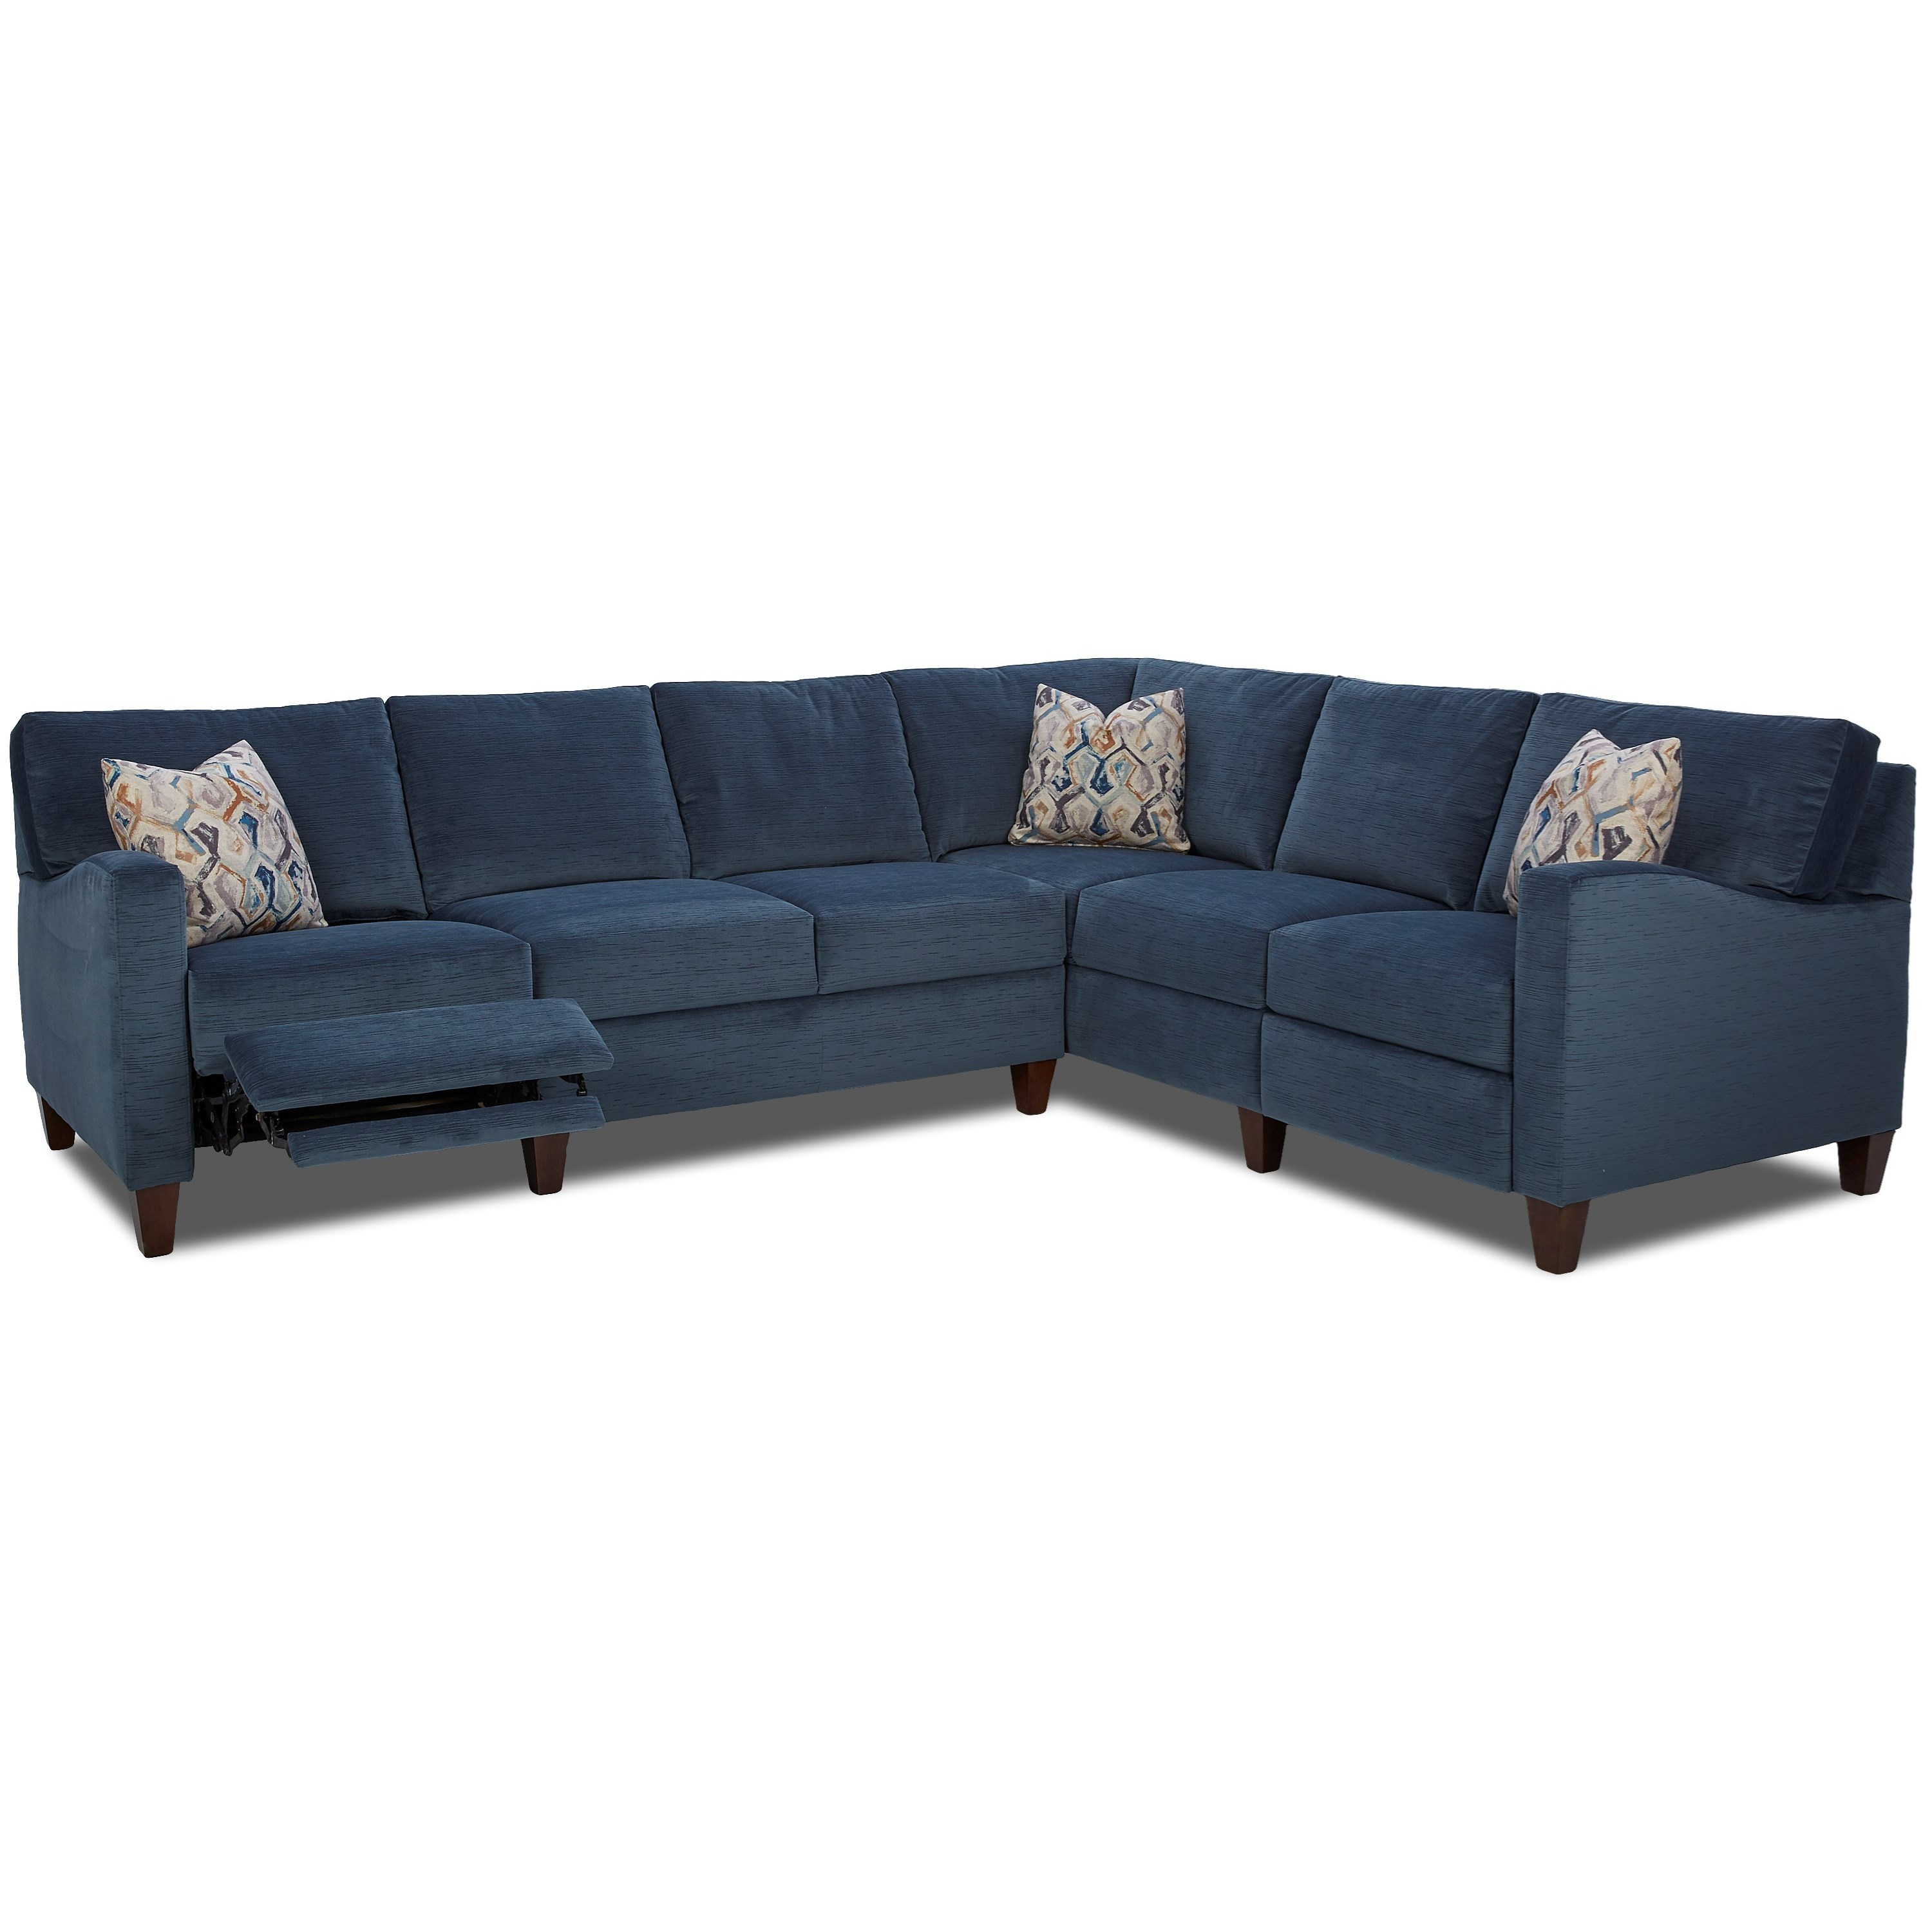 Hybrid Reclining Sectional w/ RAF Corn Sofa